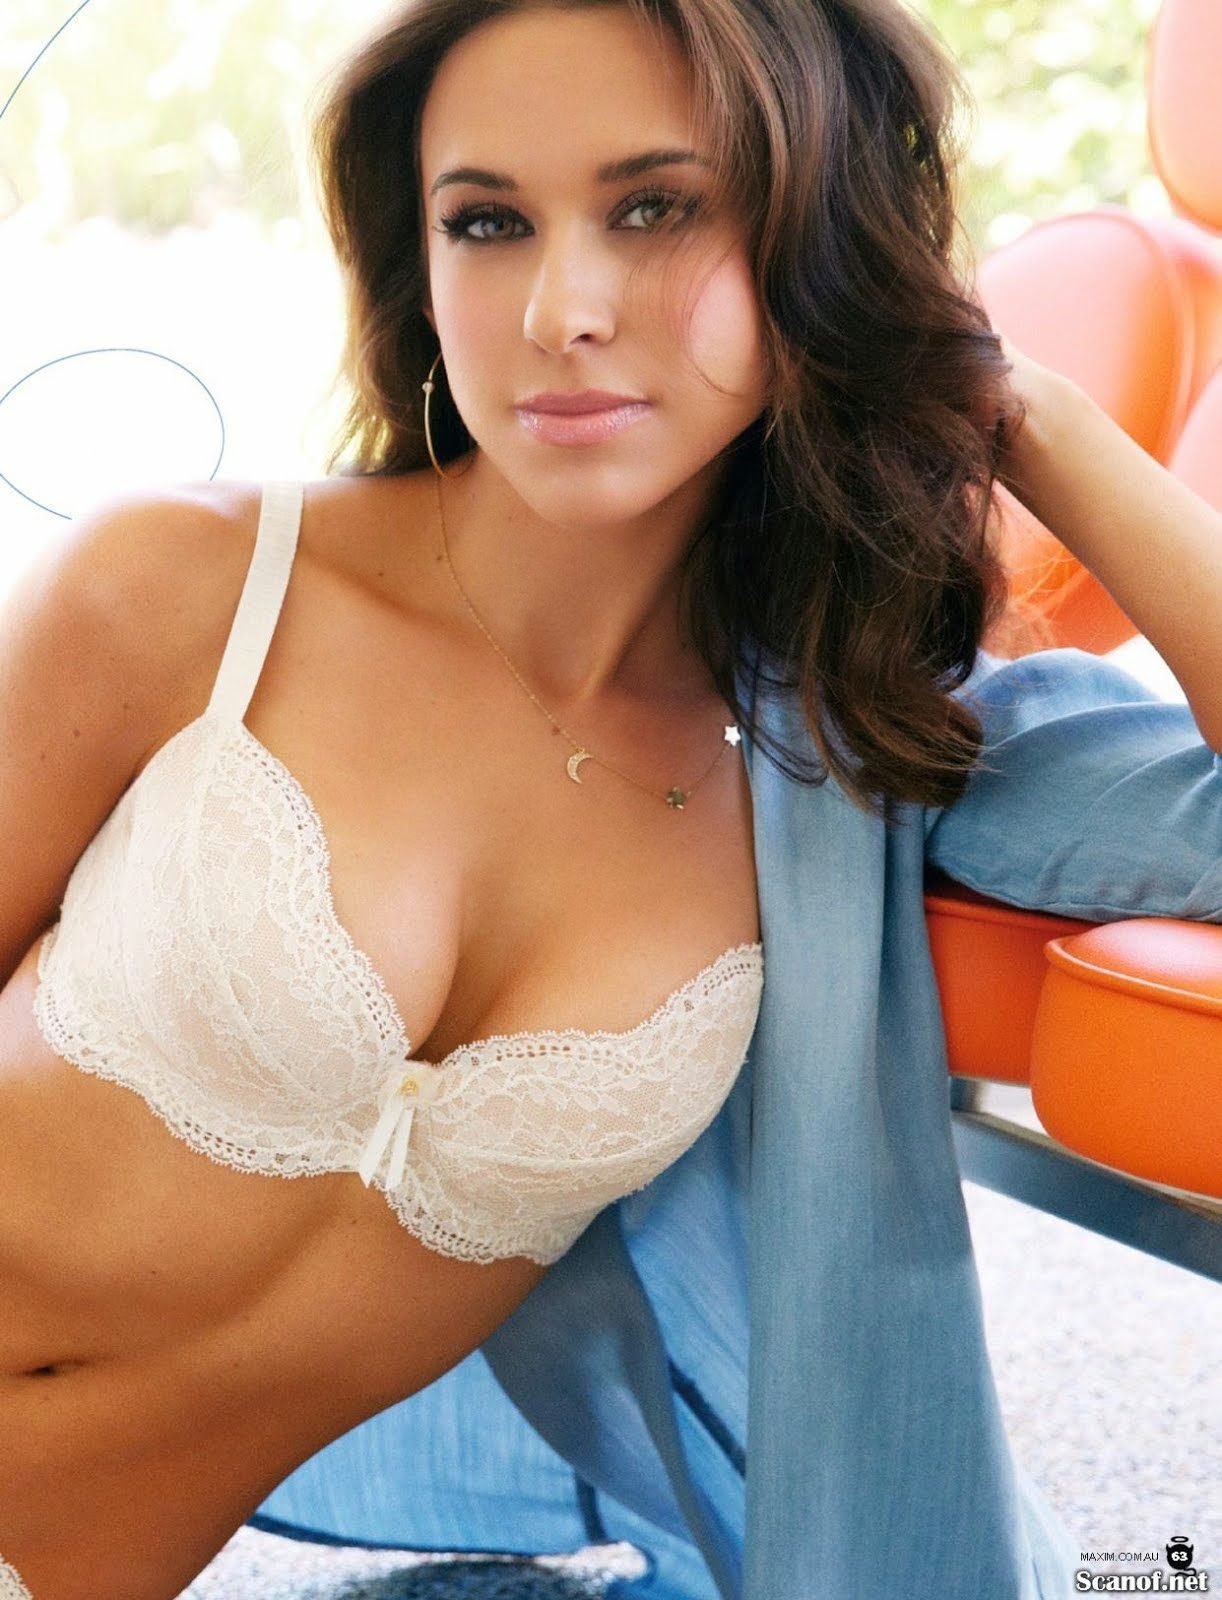 Lacey chabert porn look alike